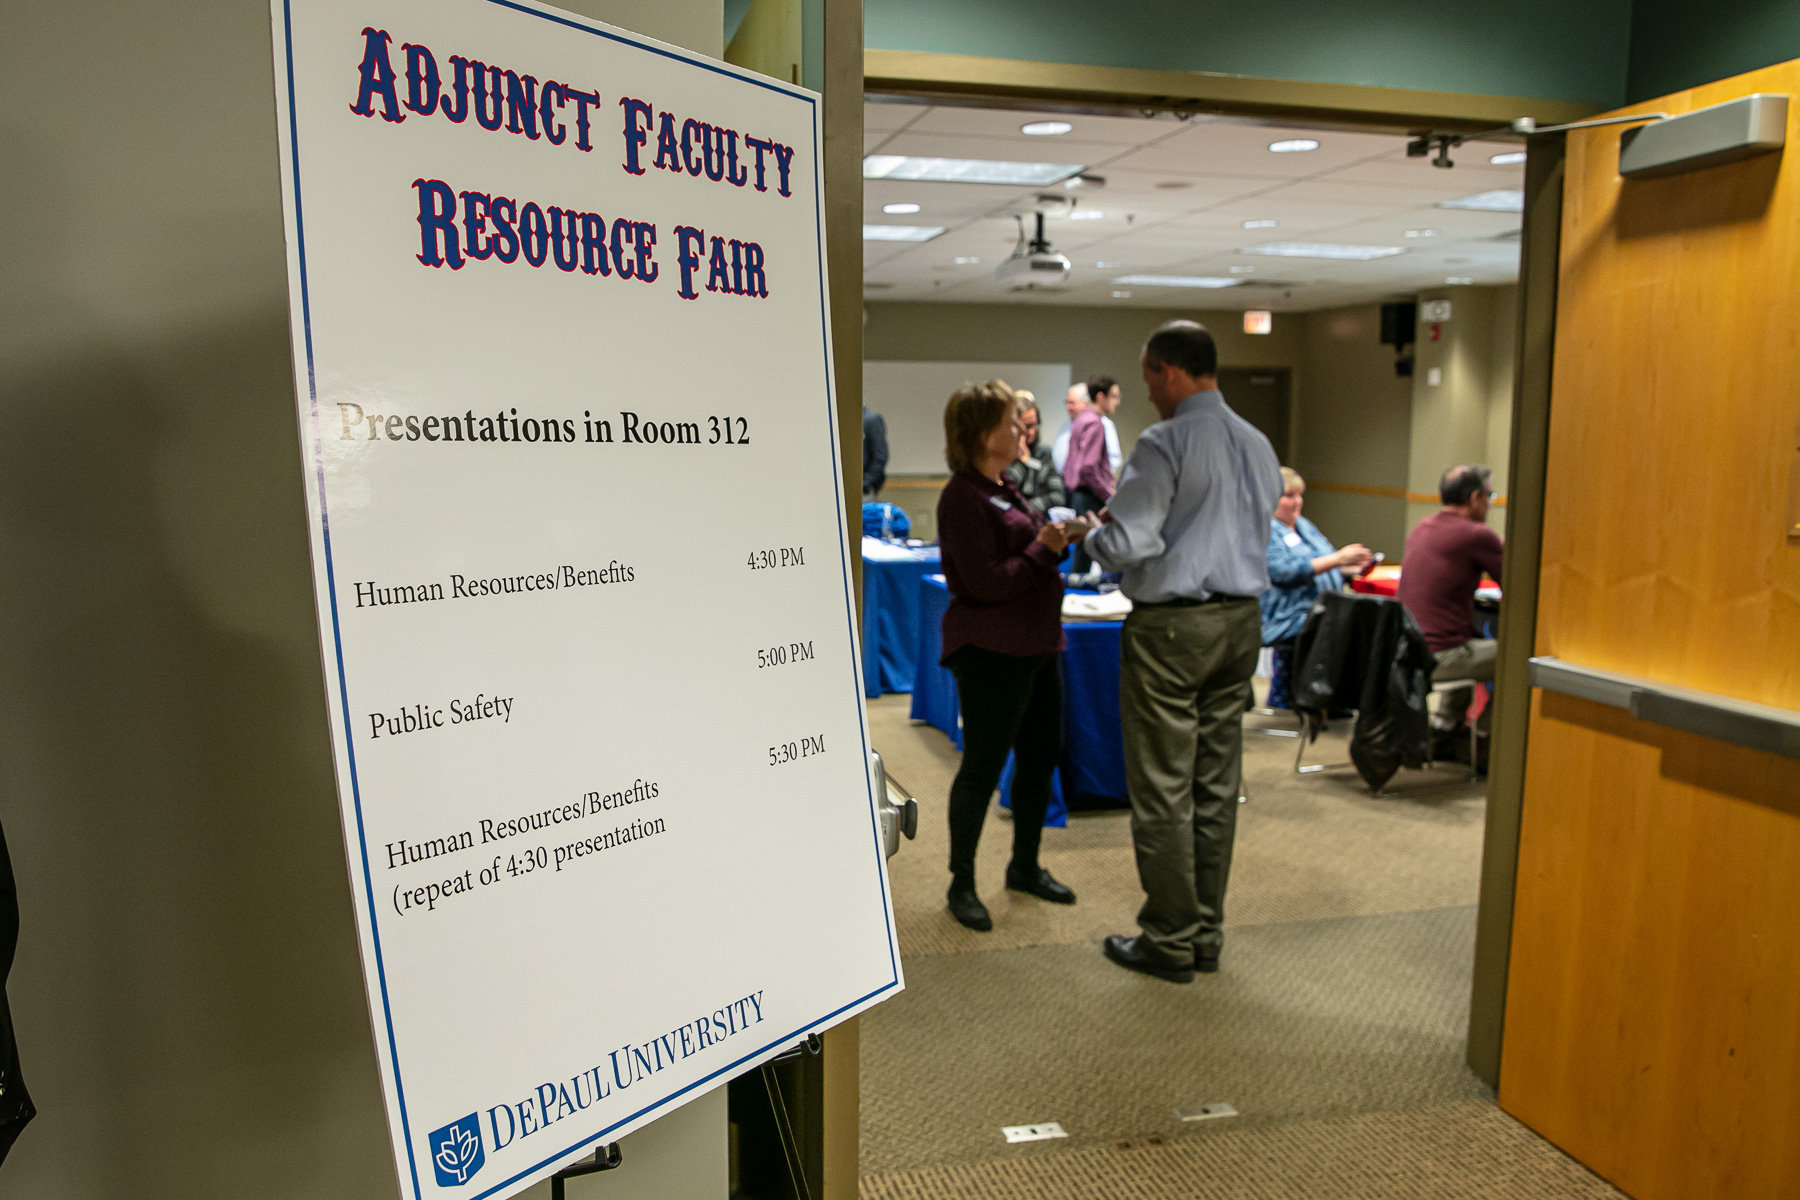 The Workplace Environment Committee (WEC) and Academic Affairs hosts an Adjunct Faculty Resource Fair, Tuesday, Oct. 15, 2019, on DePaul's Lincoln Park Campus. Part-time faculty members were encouraged to attend and learn about the many resources available to them at DePaul University. (DePaul University/Randall Spriggs)